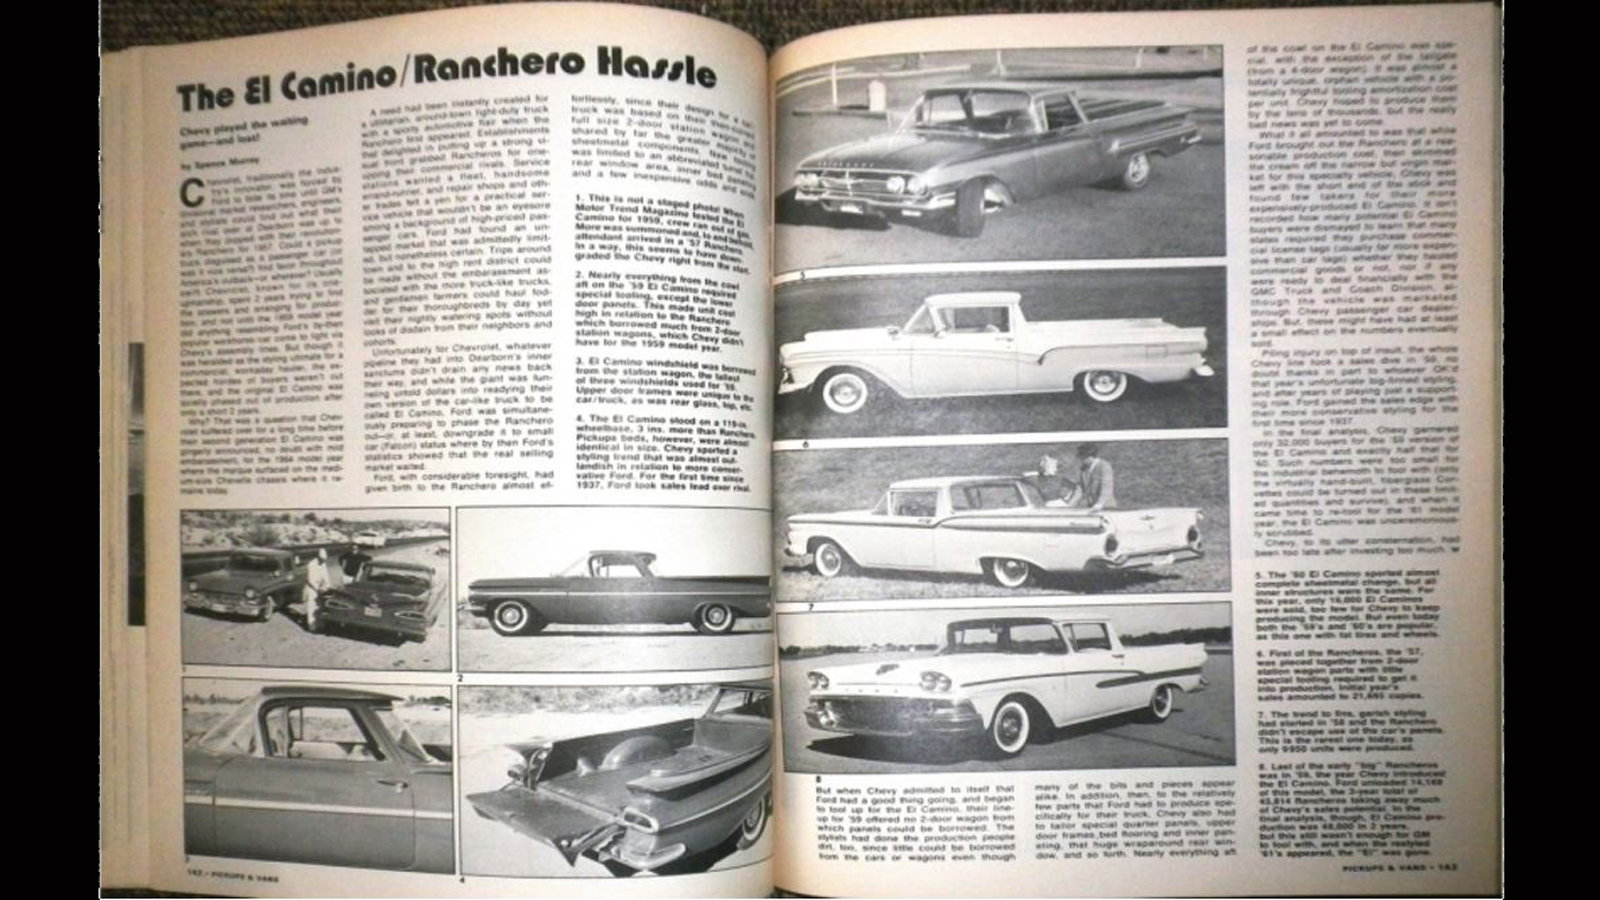 El Camino vs. Ranchero